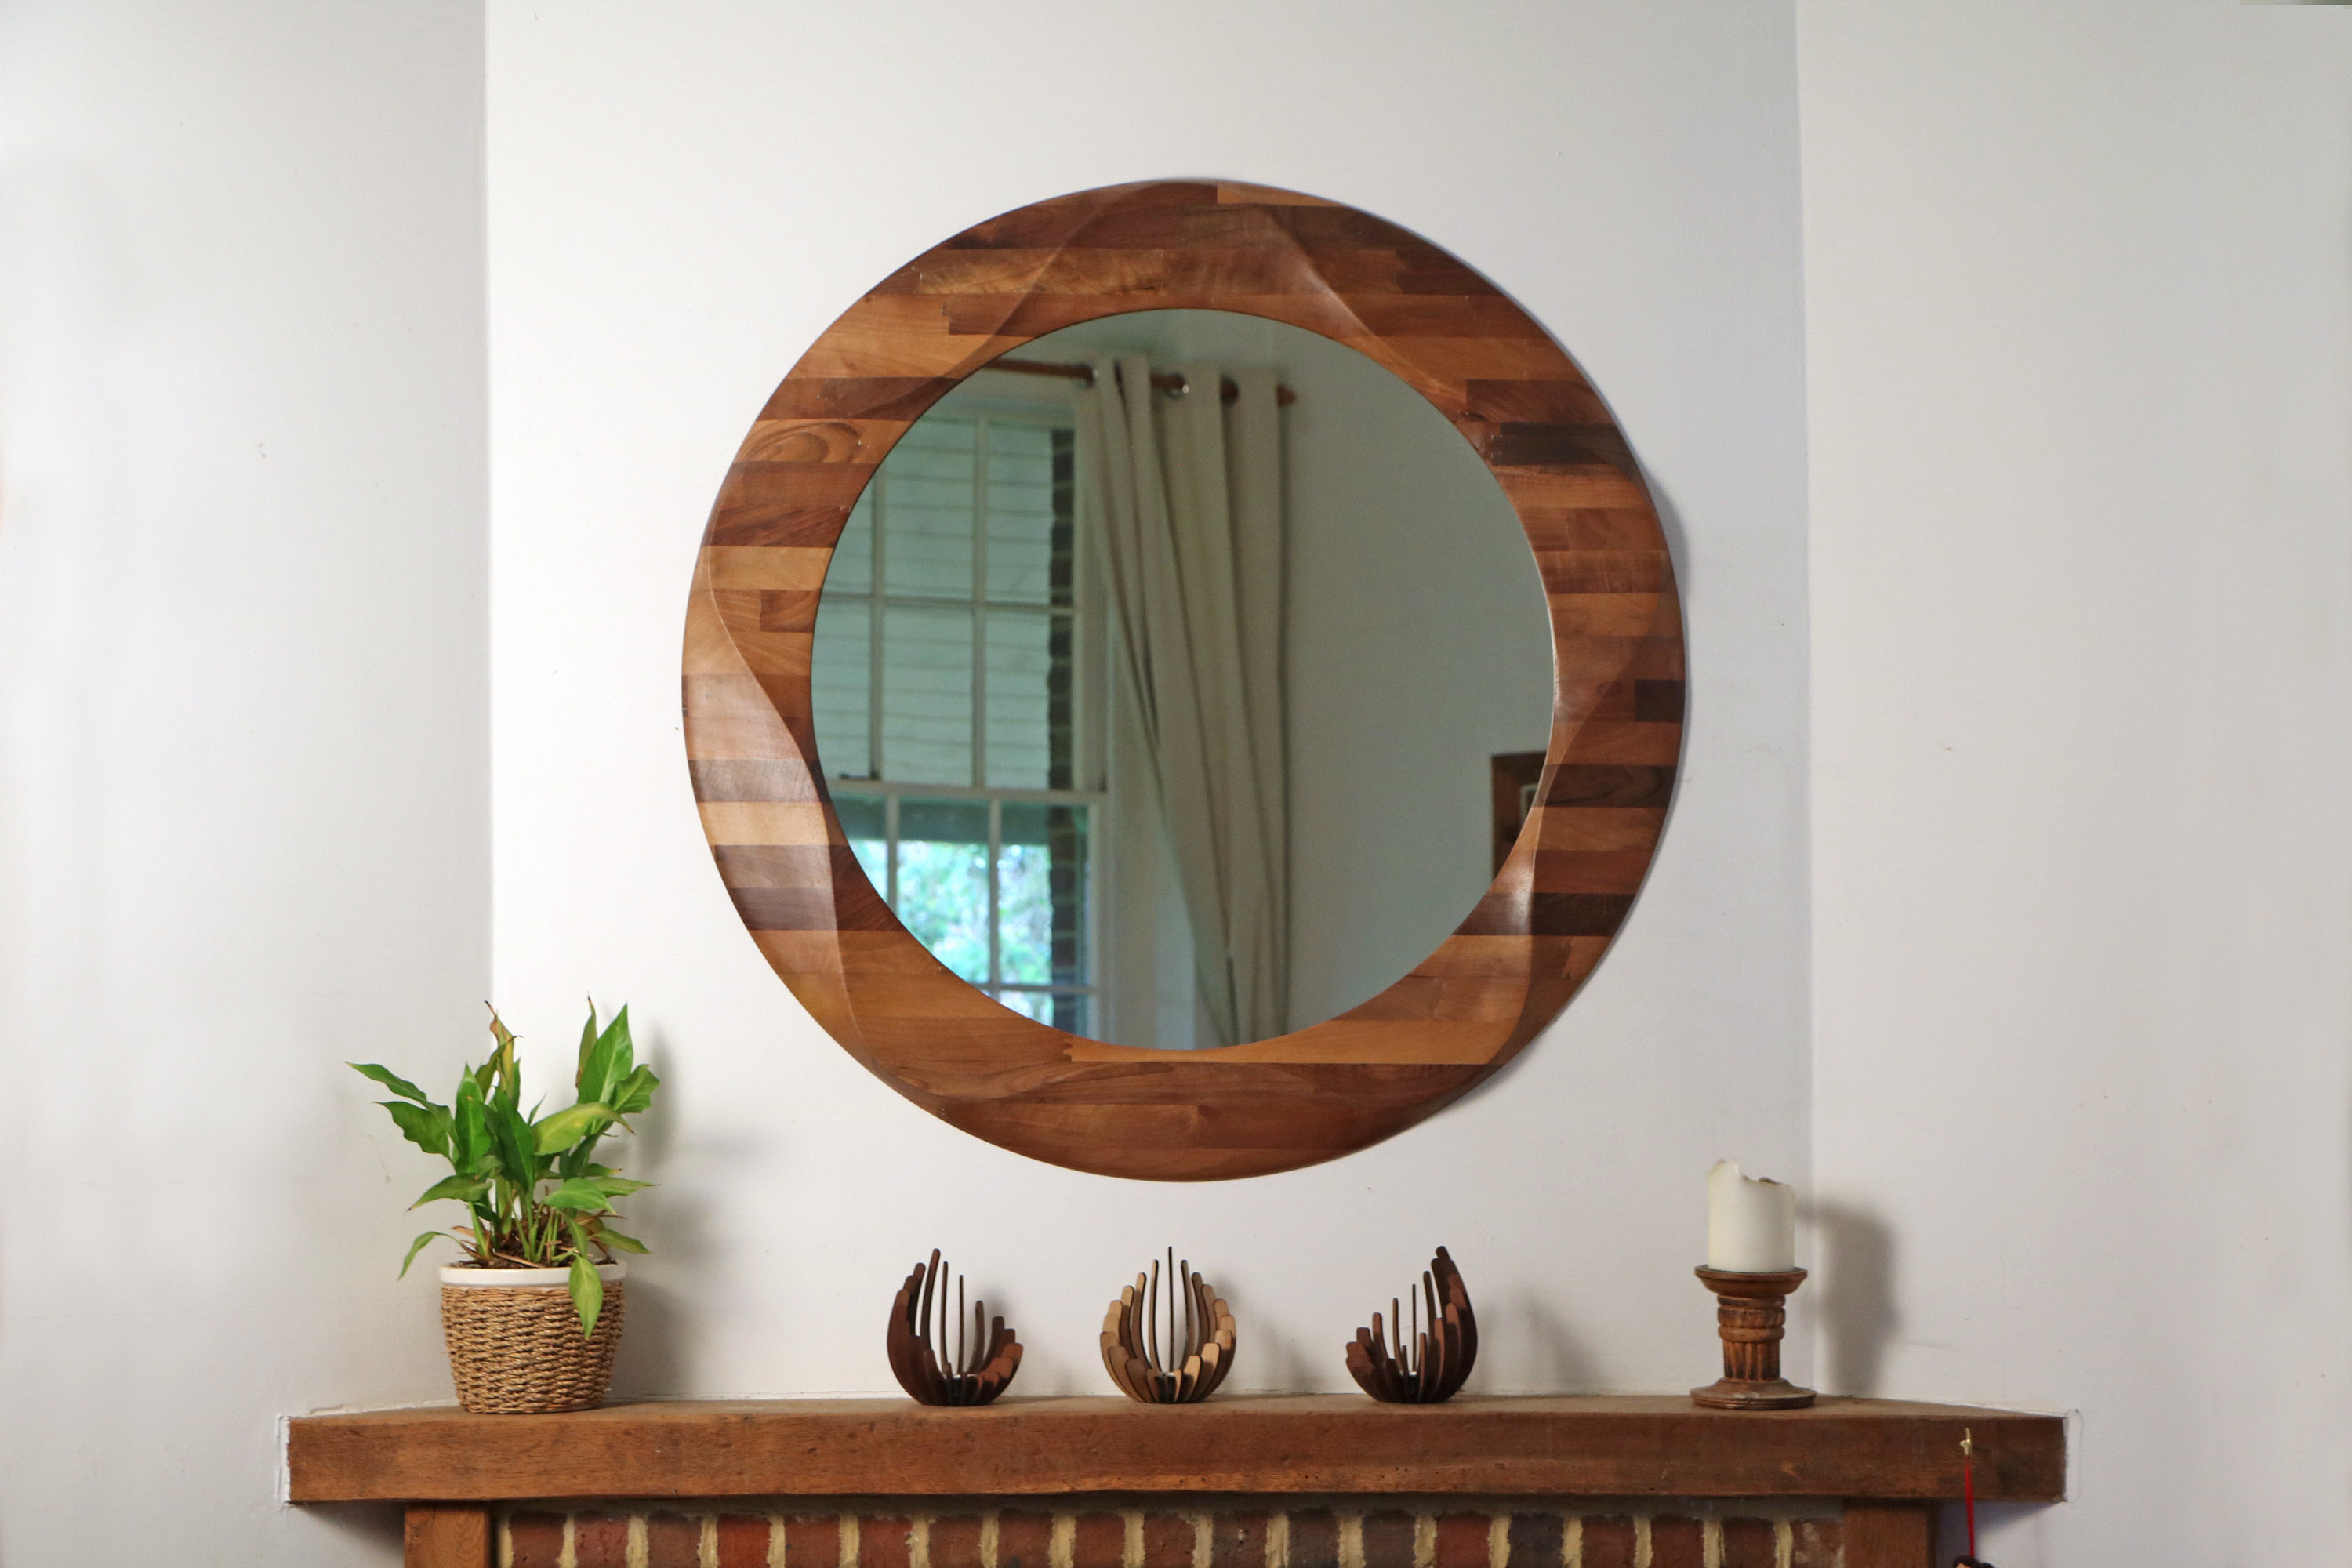 Round Mirror, Large Decorative Round Wooden Wall Mirror, Wooden Mirror  Wall, Circular Wall Hanging Mirror Made From Solid Walnut Wood (Image 17 of 20)